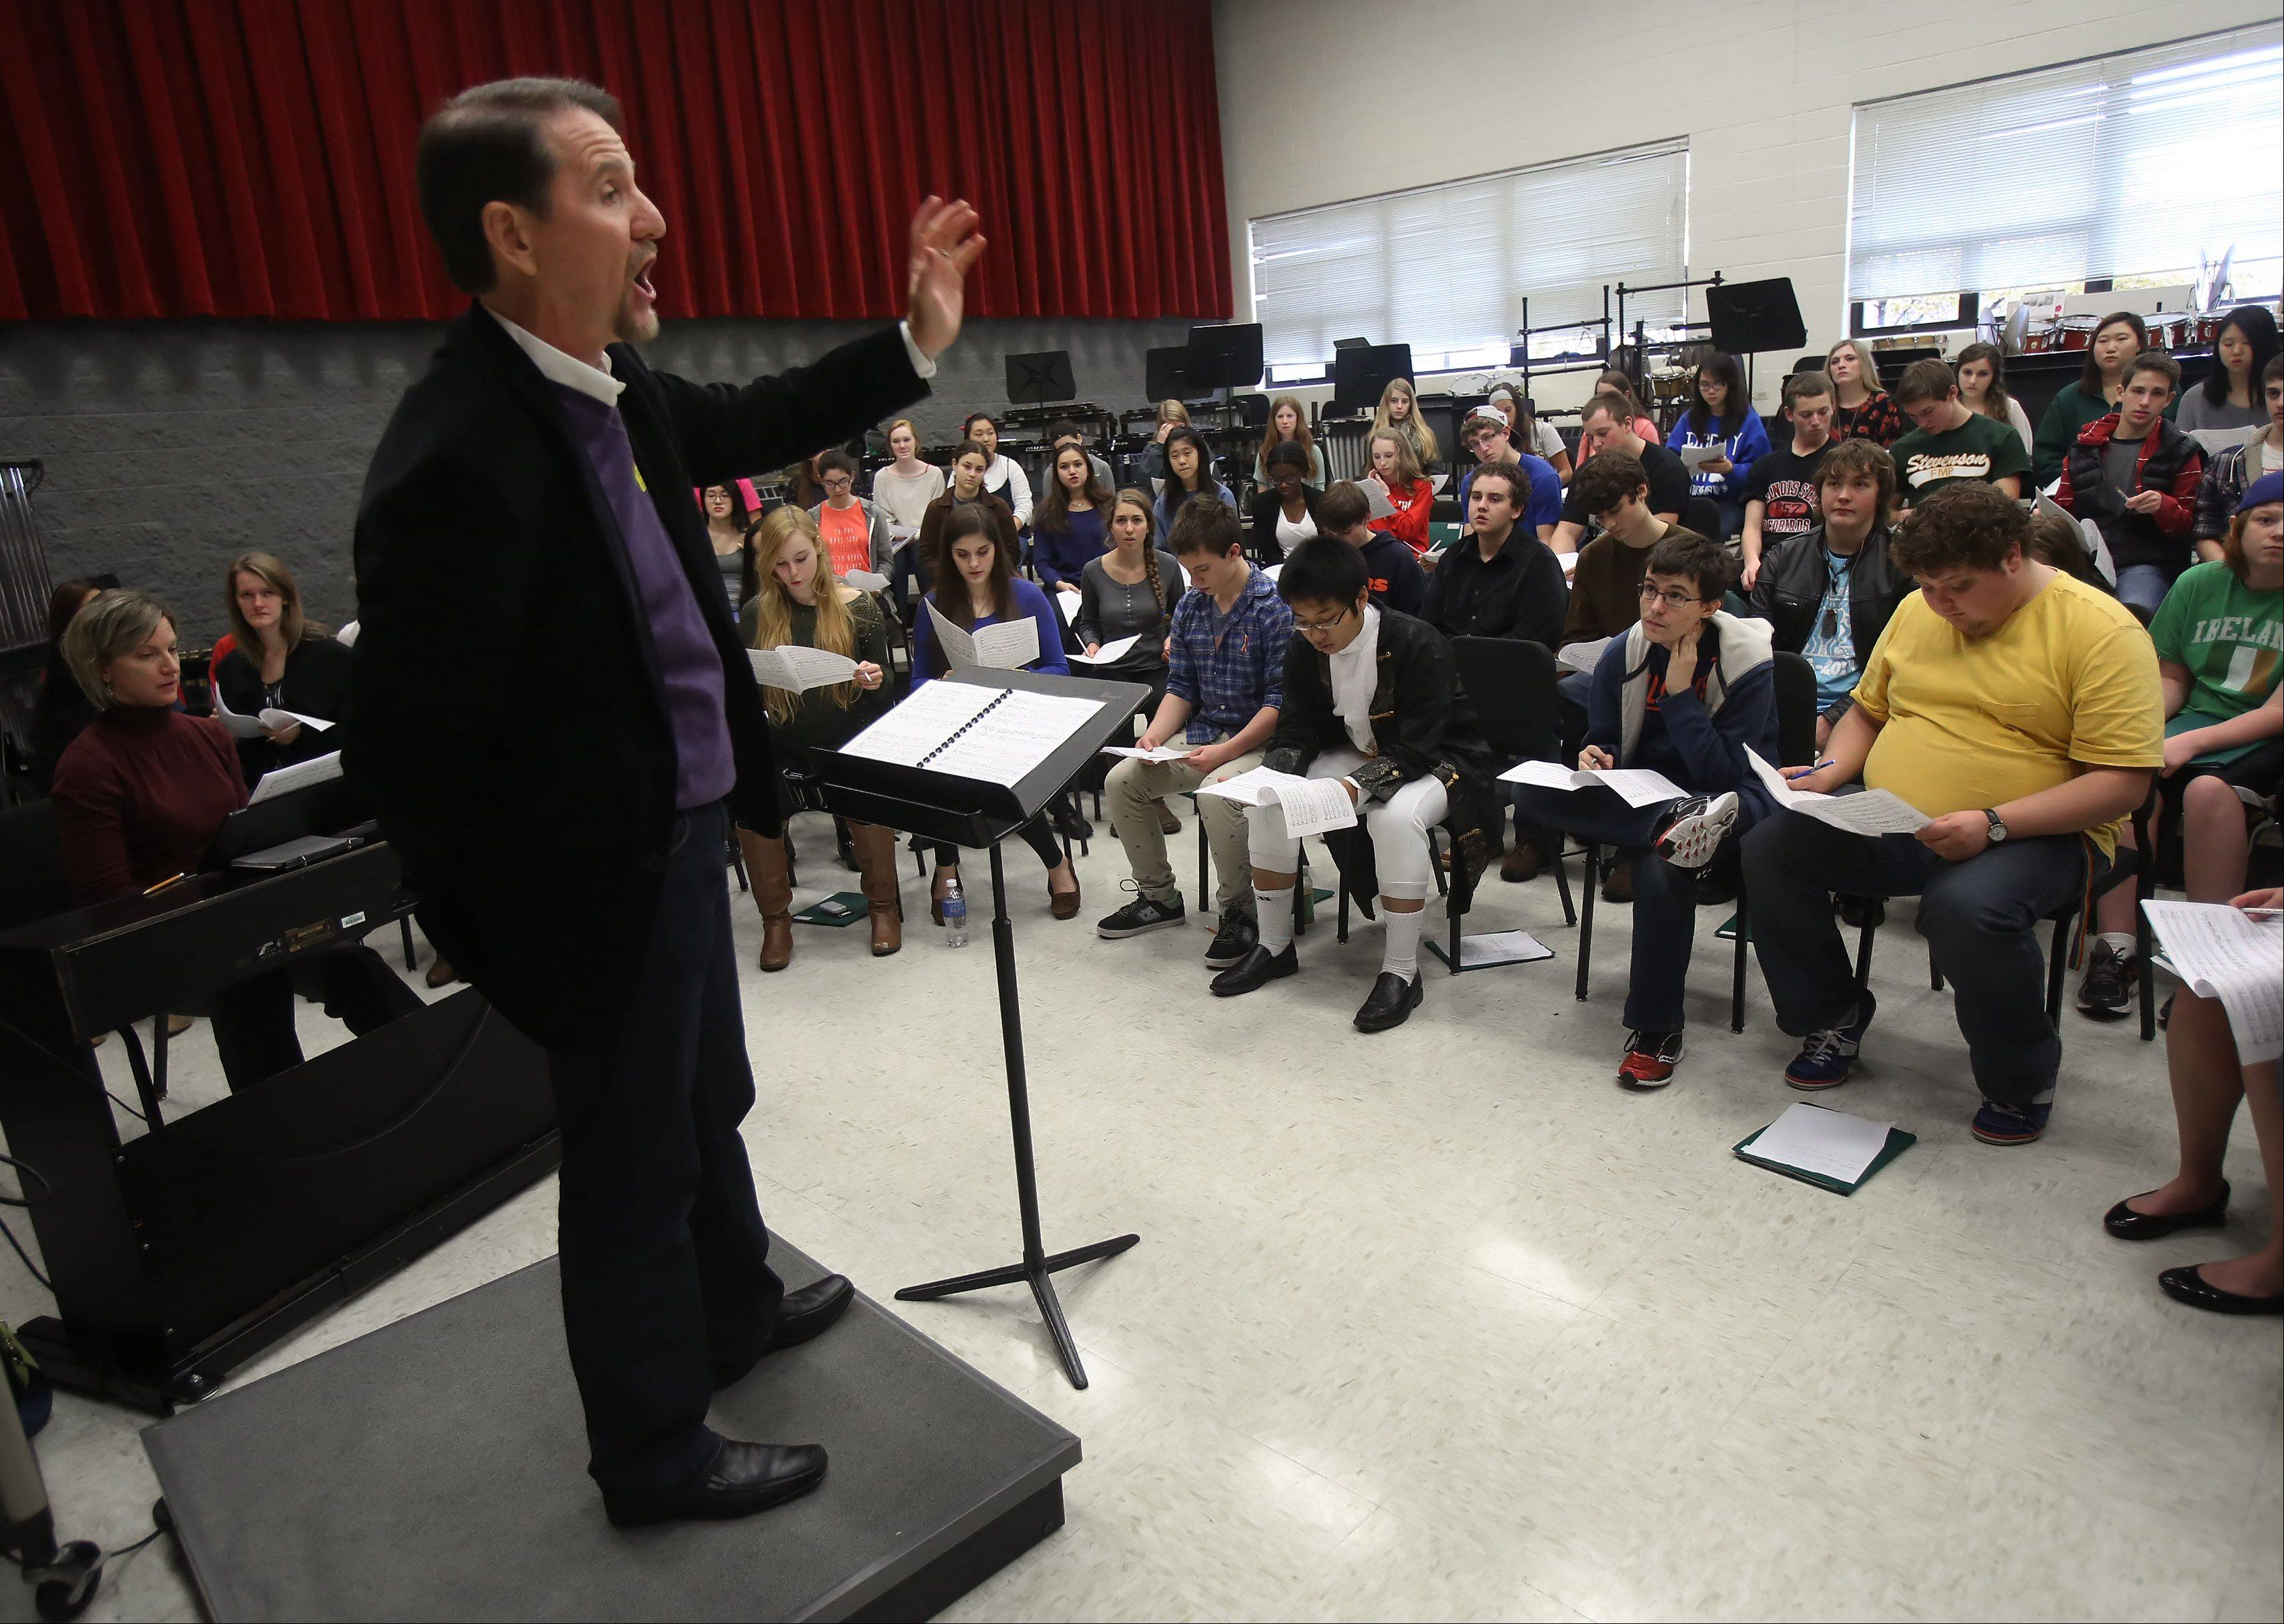 The band room in Stevenson High School's west building could be renovated as part of a $9.7 million project being considered for summer 2014. Here, Emmy Award-winning Chicago composer Gary Fry works with students during a recent visit.